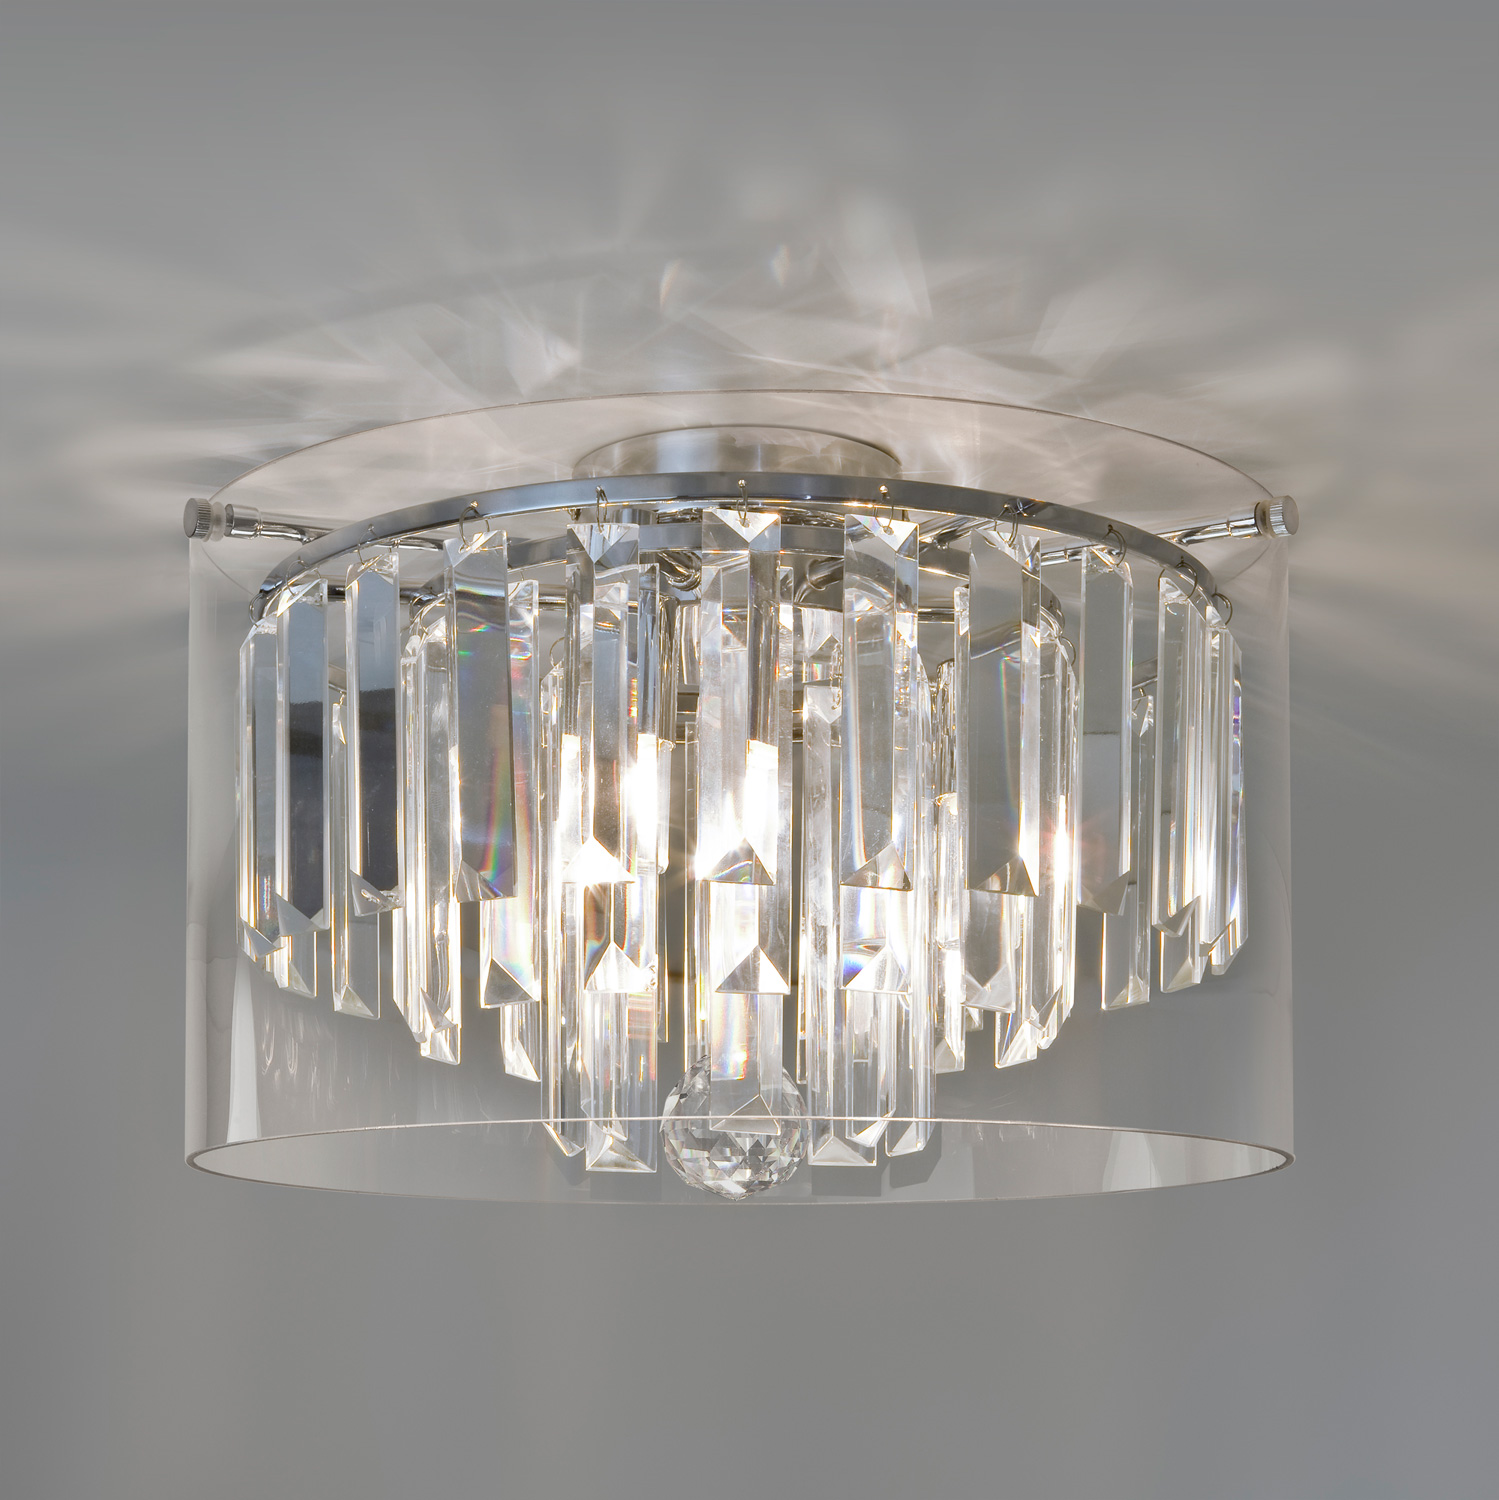 Astro Asini 7169 bathroom bedroom chandelier light 3 x 33W IP44 dimmable chrome Thumbnail 1